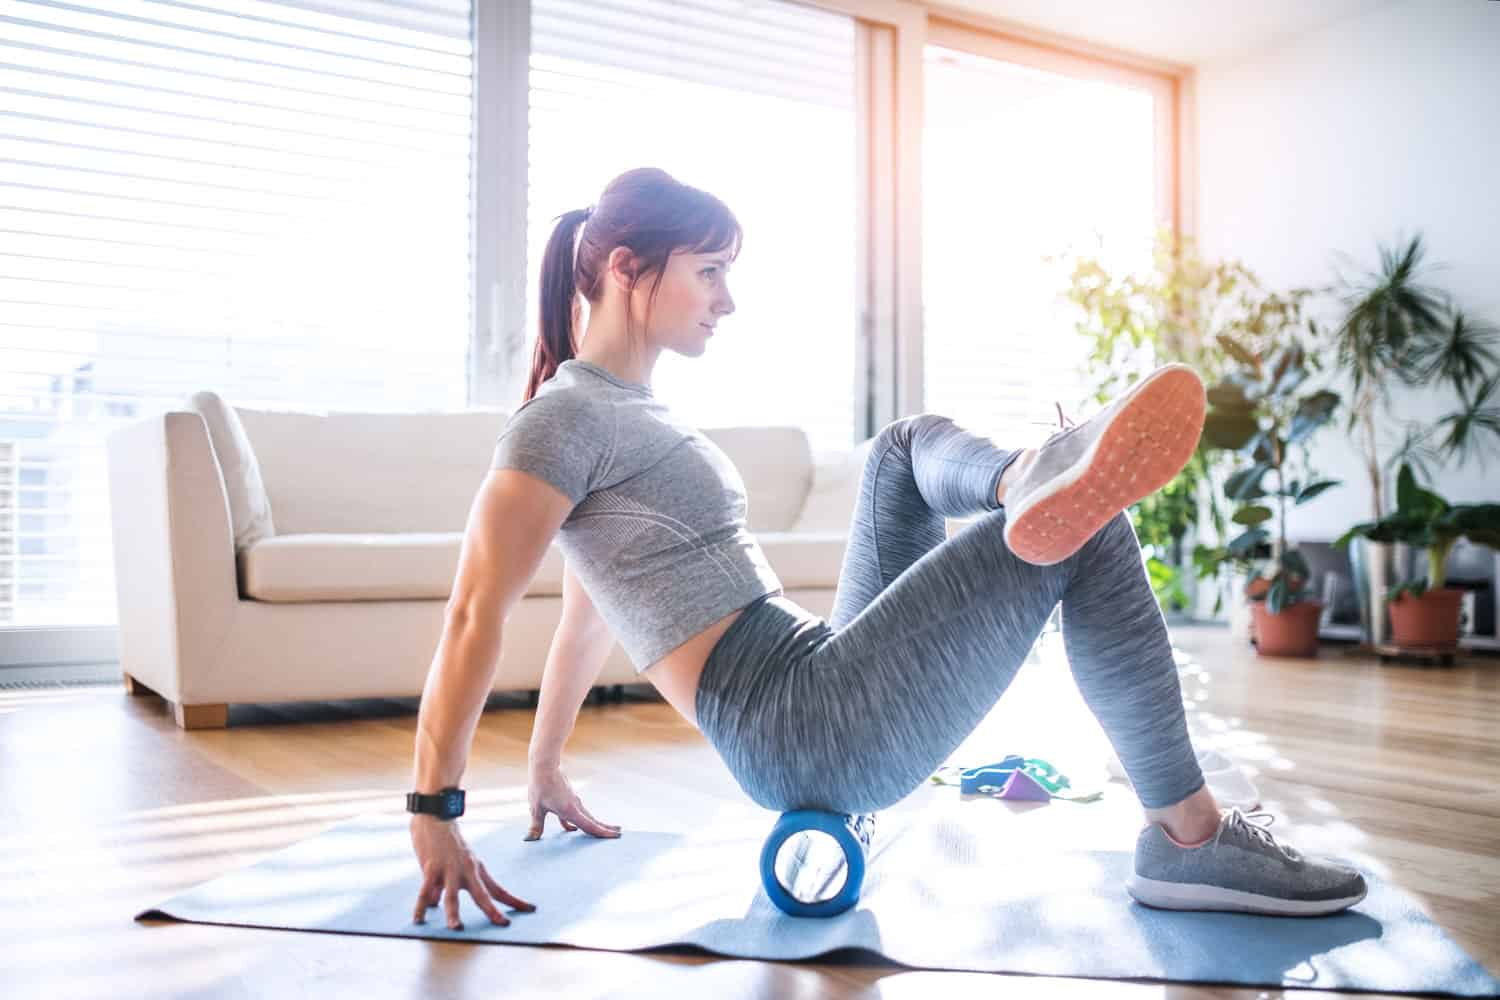 A woman stretching before doing some home workout